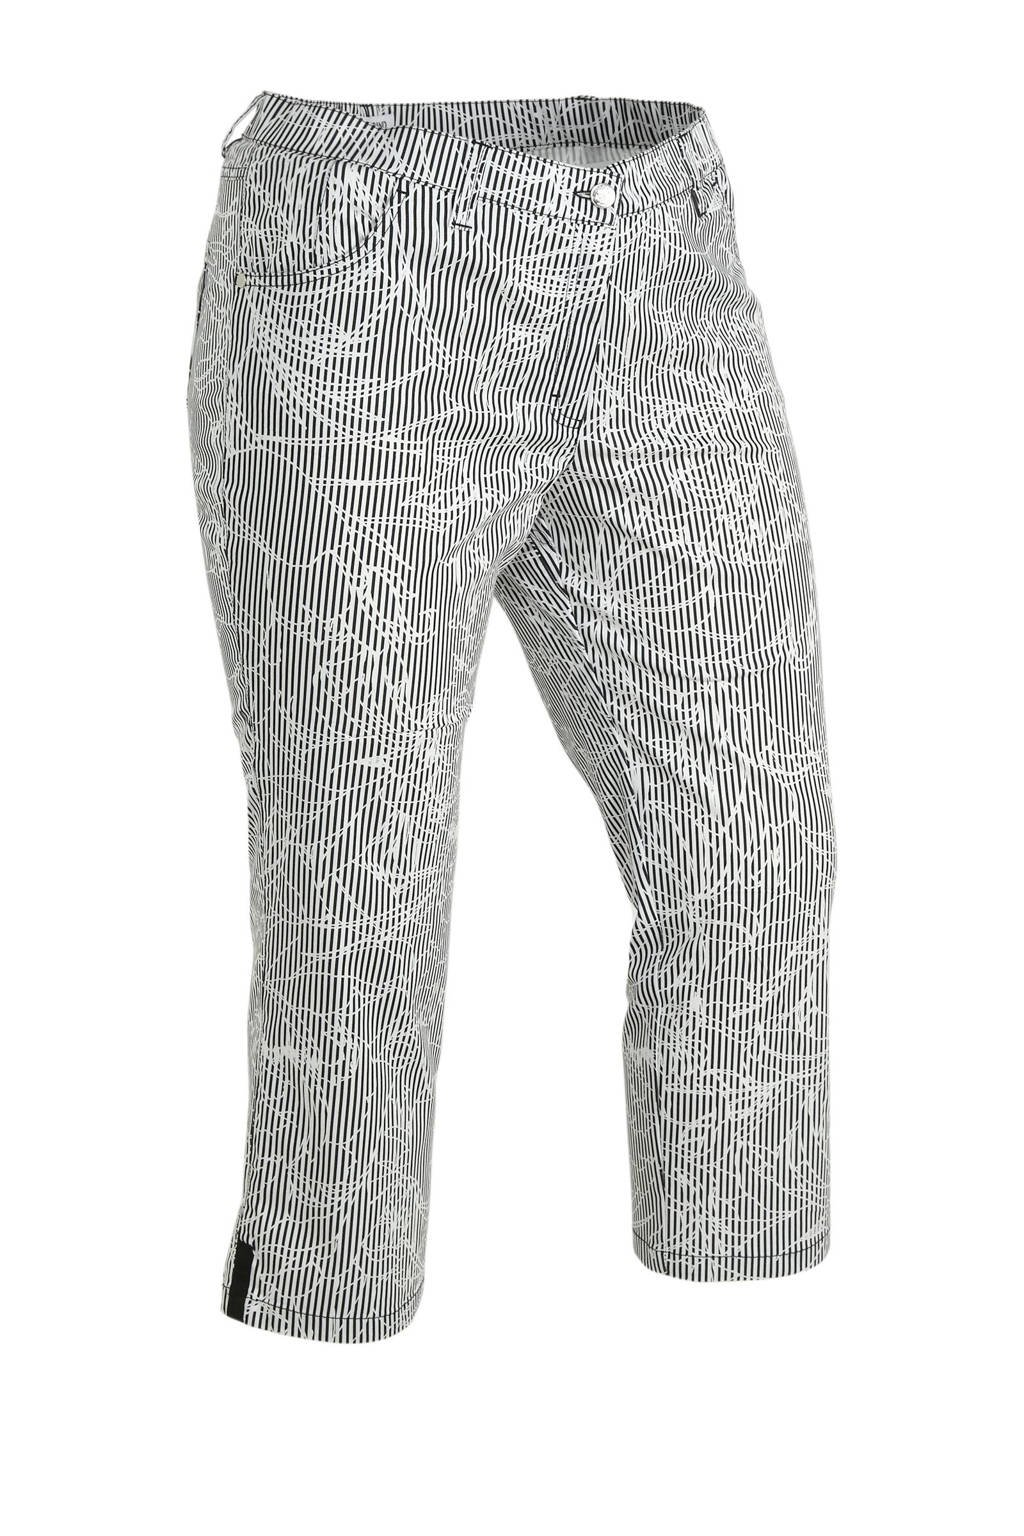 KjBRAND slim fit capri Betty met wol en all over print grijs, Grijs